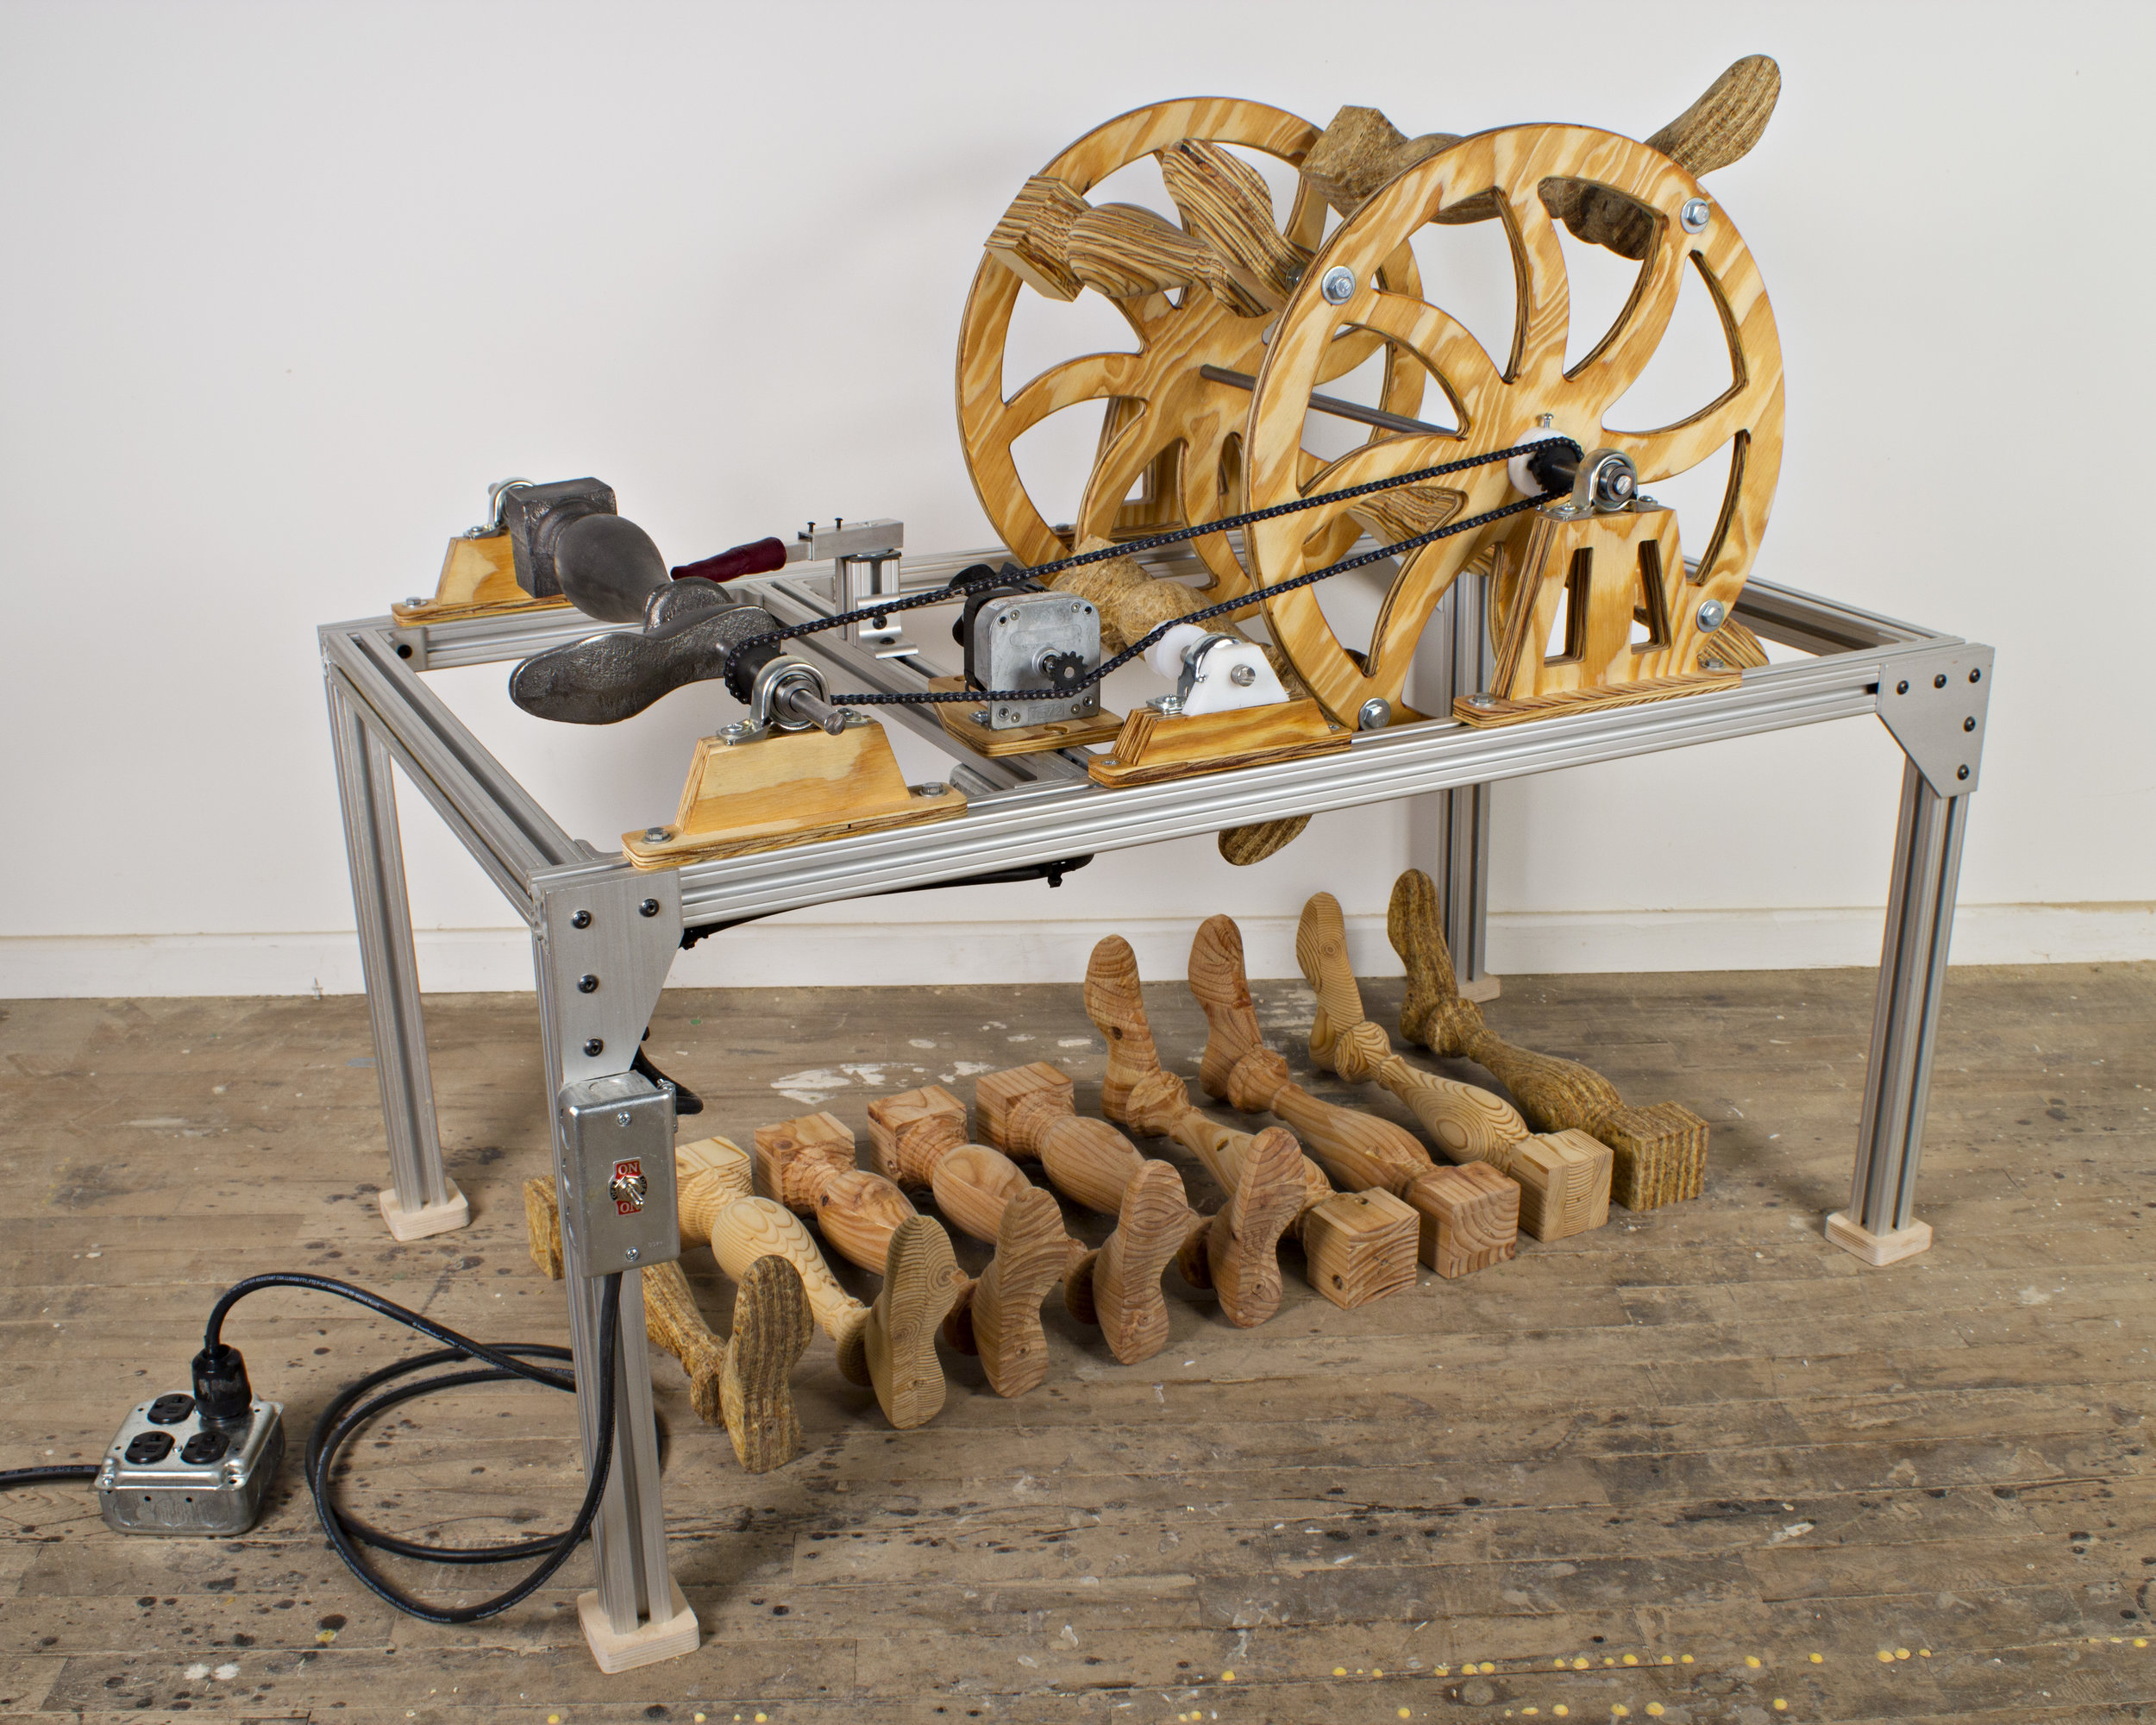 Fig. 6.  Lewis Colburn, United States.  Untitled (after Thomas Blanchard) , 2015. Cast iron, plywood, pine, oriented strand board, aluminum extrusion, cast urethane, steel, motor, hardware, and mechanical components. 36 x 44 x 26 in. Exhibited in The Center for Art in Wood's  Other Selections  exhibition May 1–July 18, 2015. Photo: John Carlano